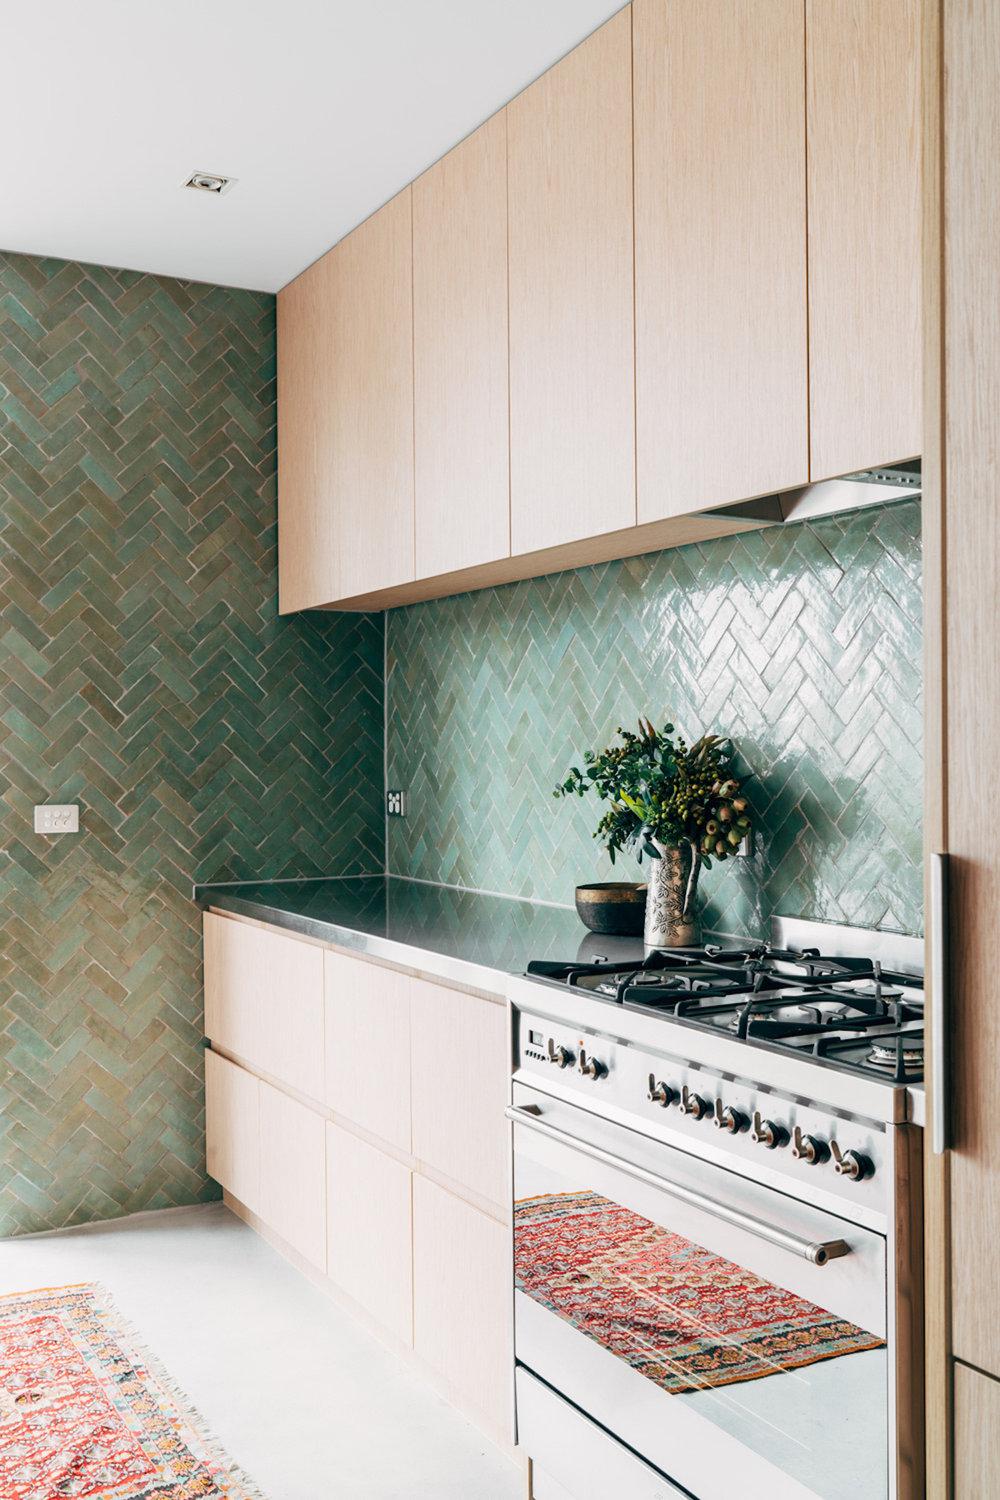 Studio Ezra Tiles of Ezra FL006 Aqua kitchen splashback.jpg